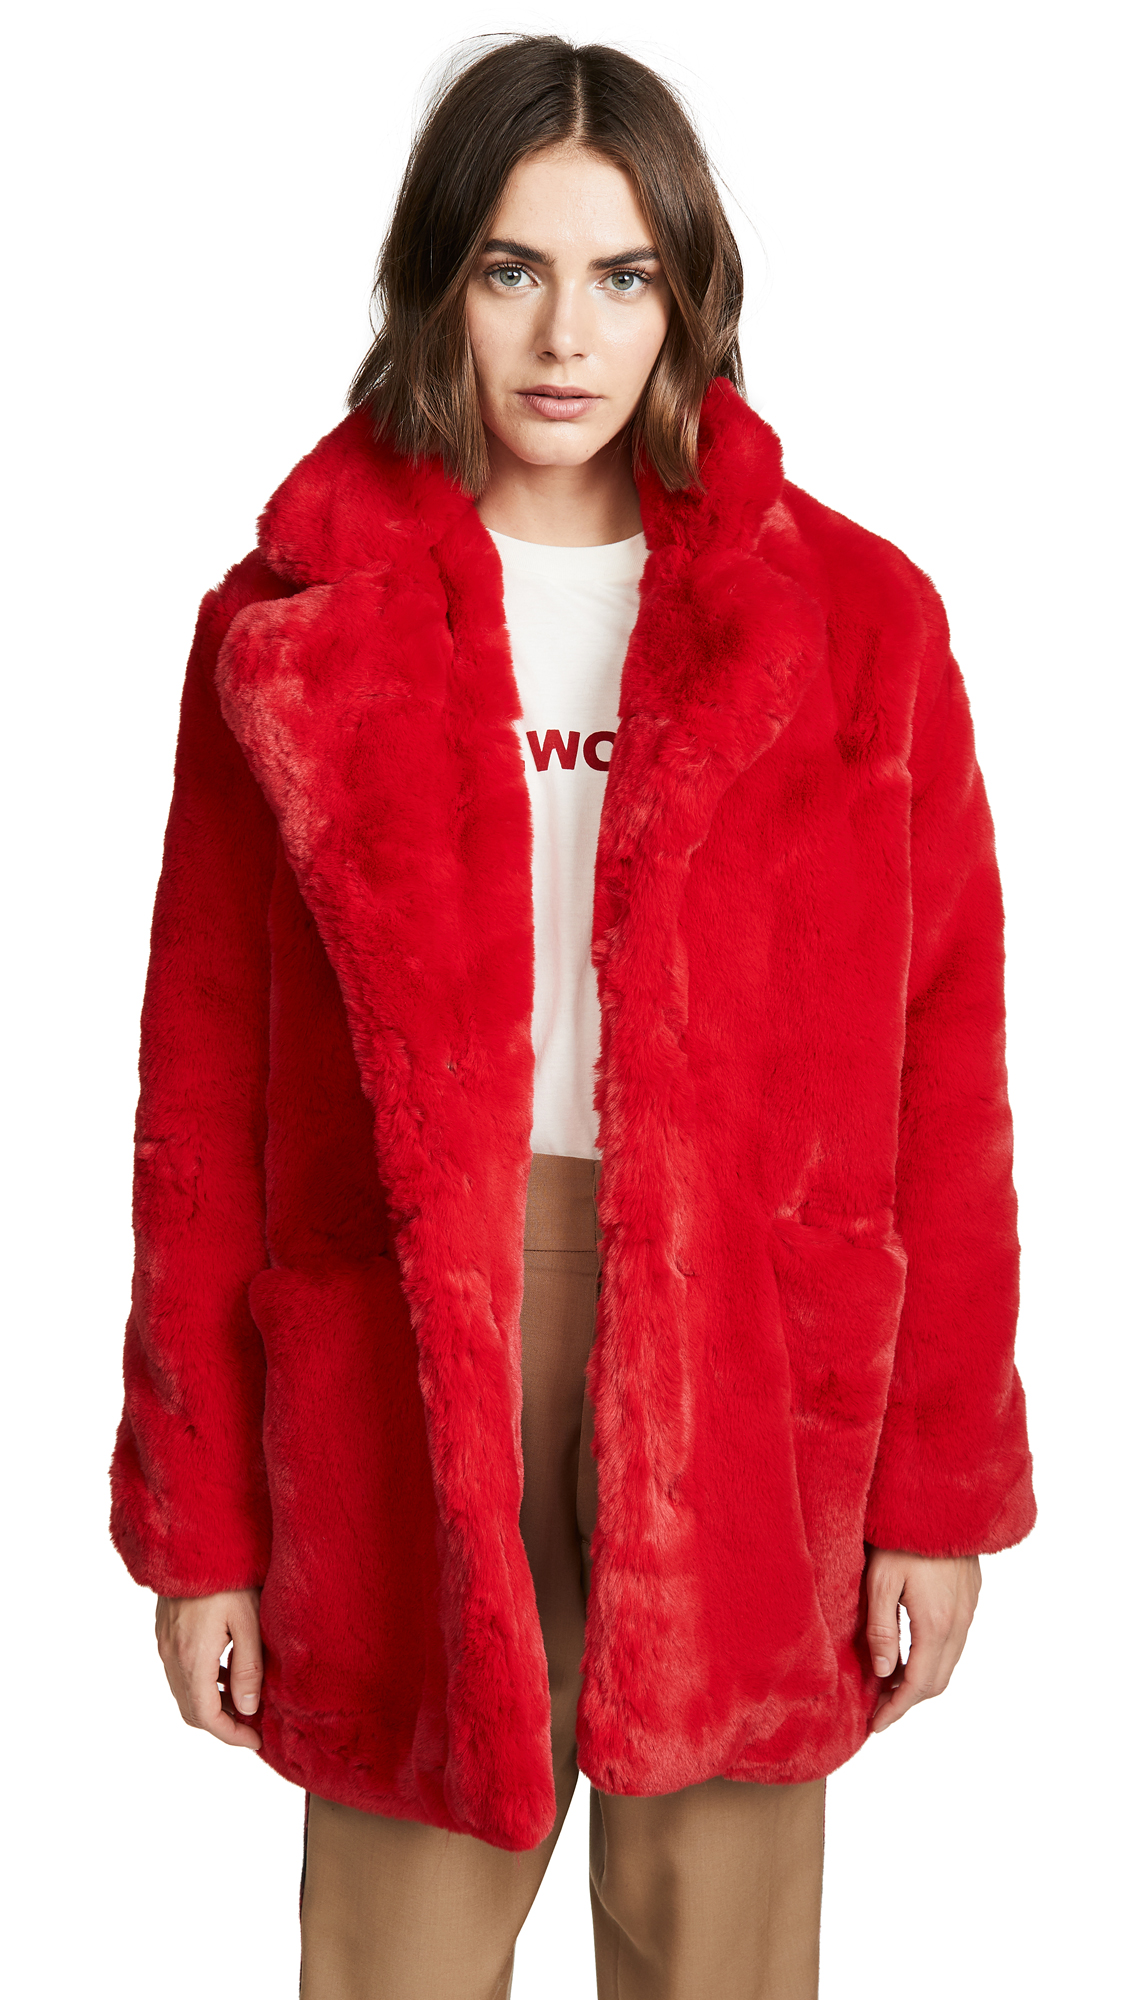 Apparis Furs SOPHIE FAUX FUR COAT